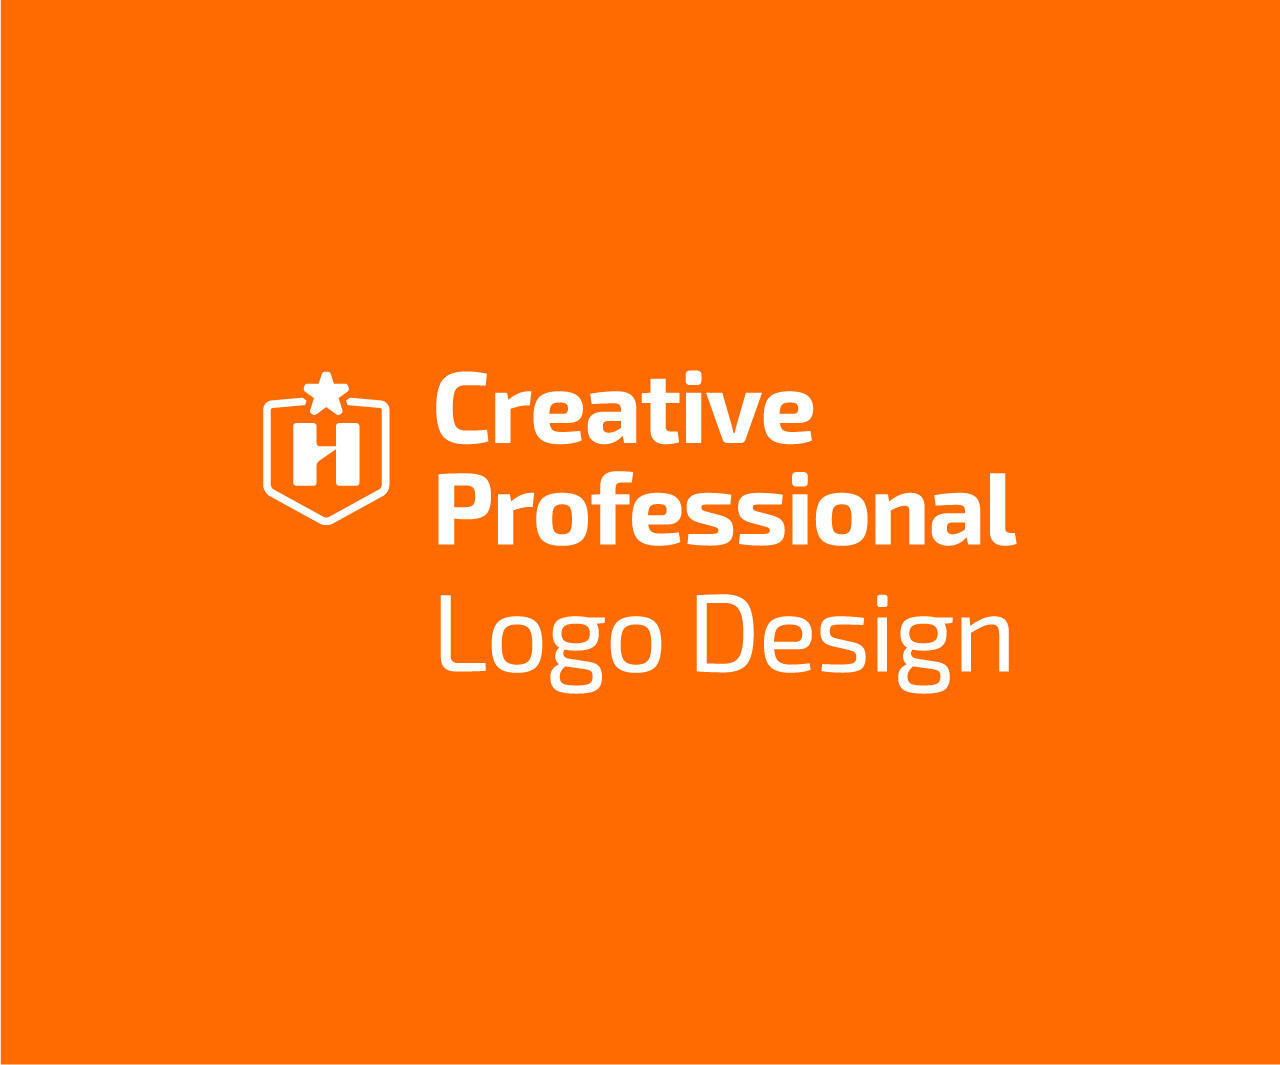 Creative Professional Logo Design by hachesilva - 91017